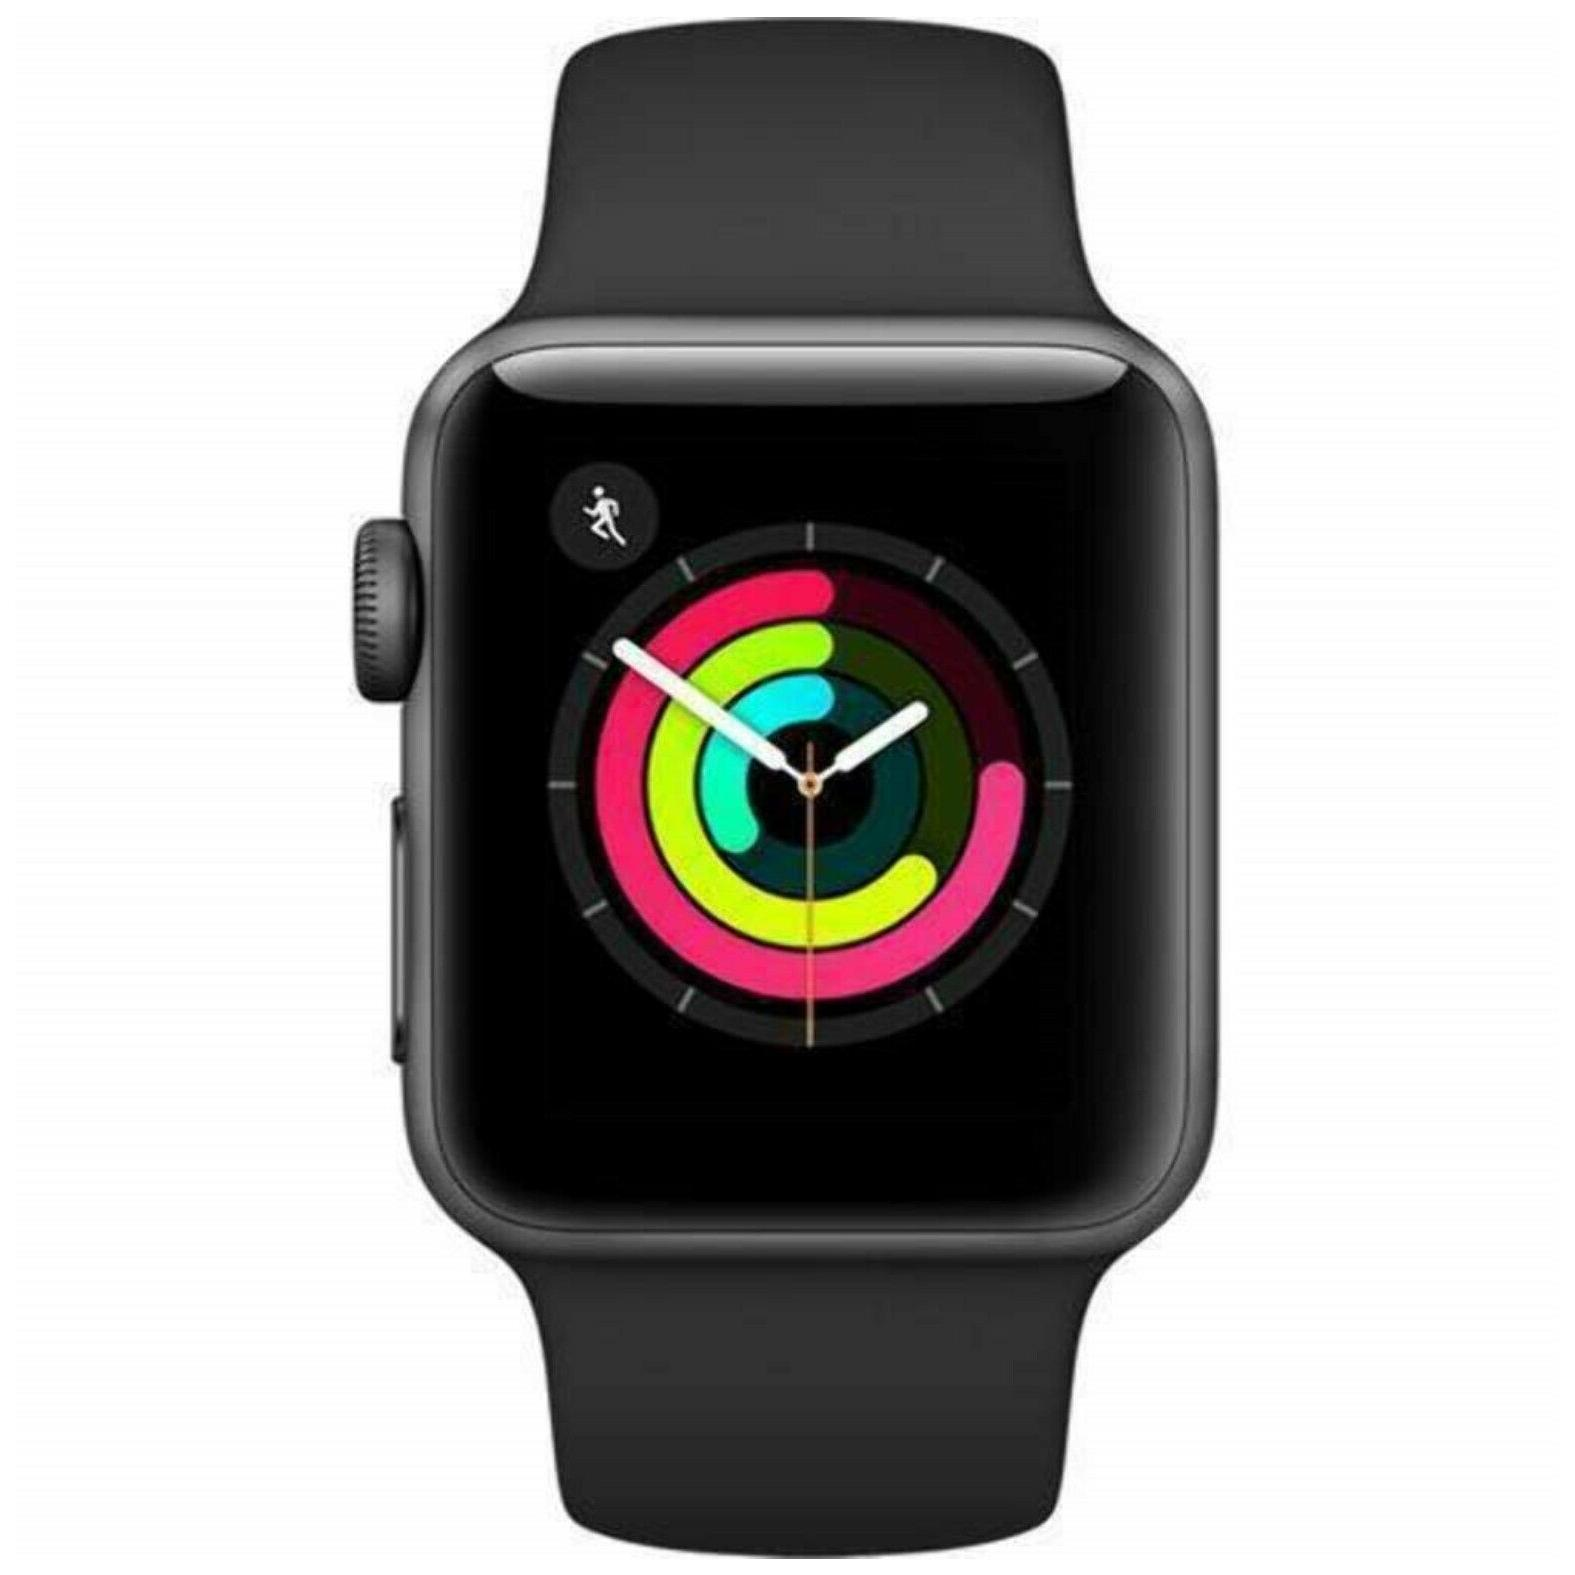 Apple Watch 42mm Aluminum with GPS/Cellular